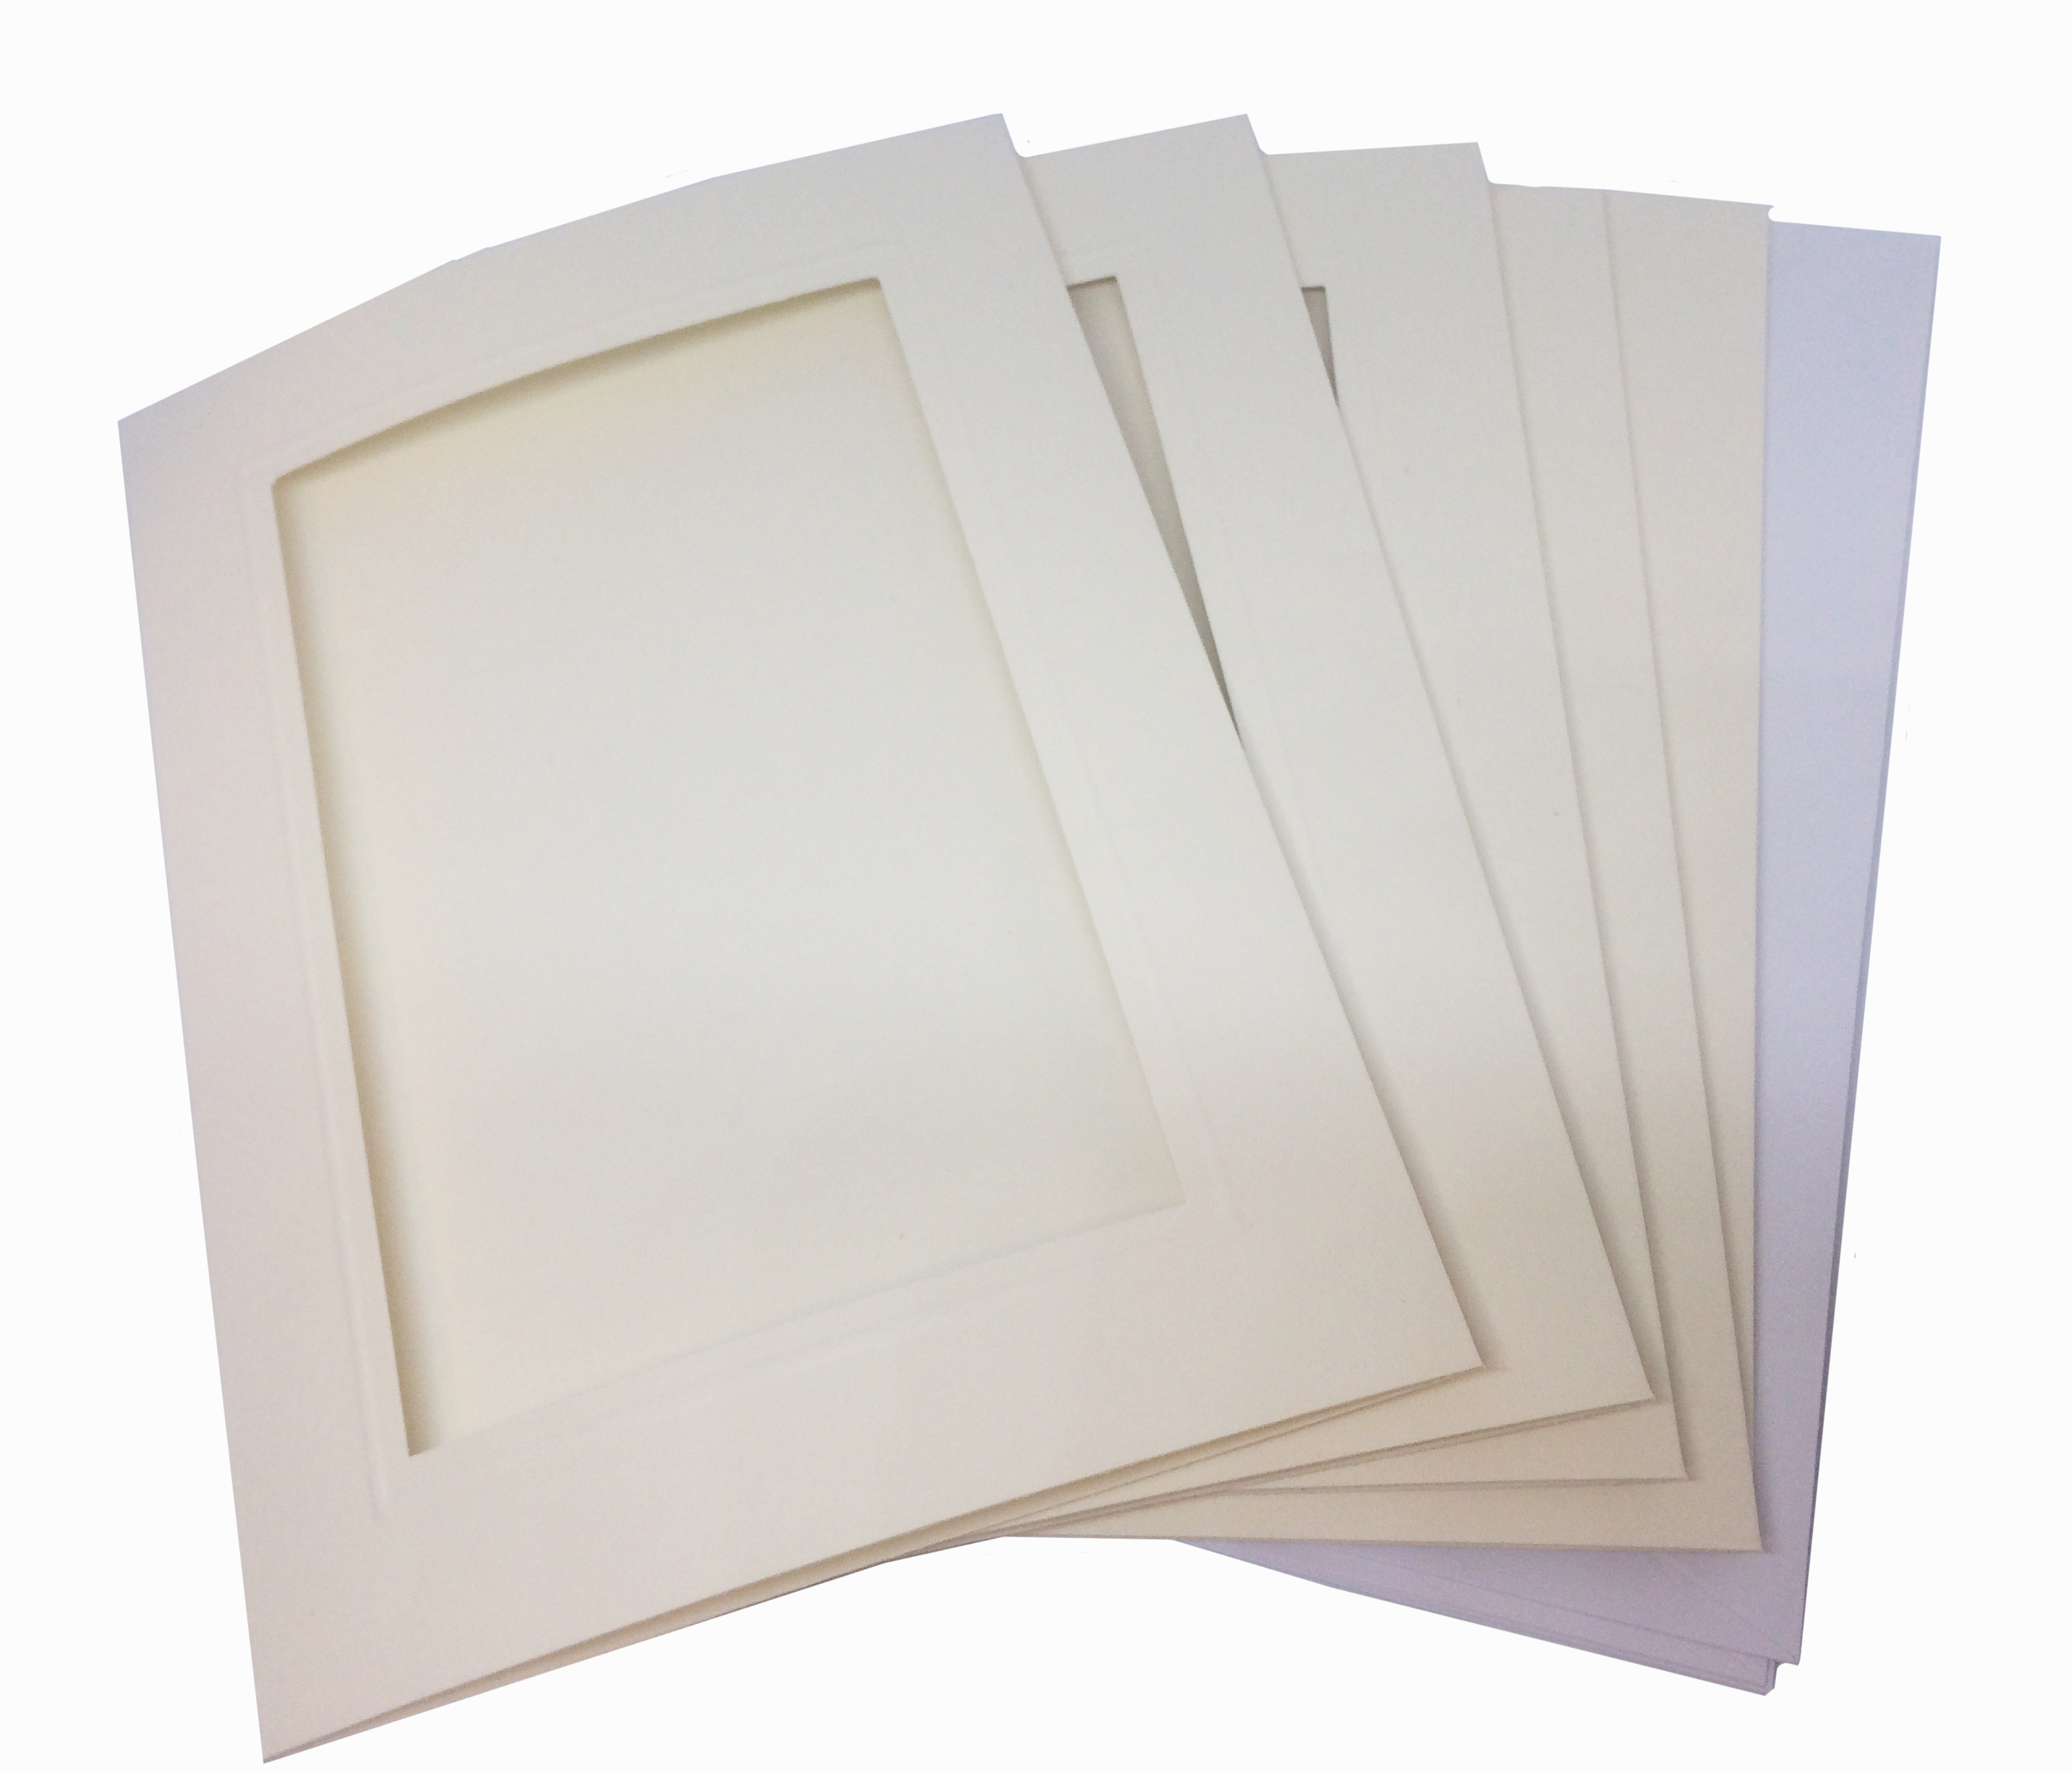 Pack of 5 Rectangular Aperture Cards and Envelopes